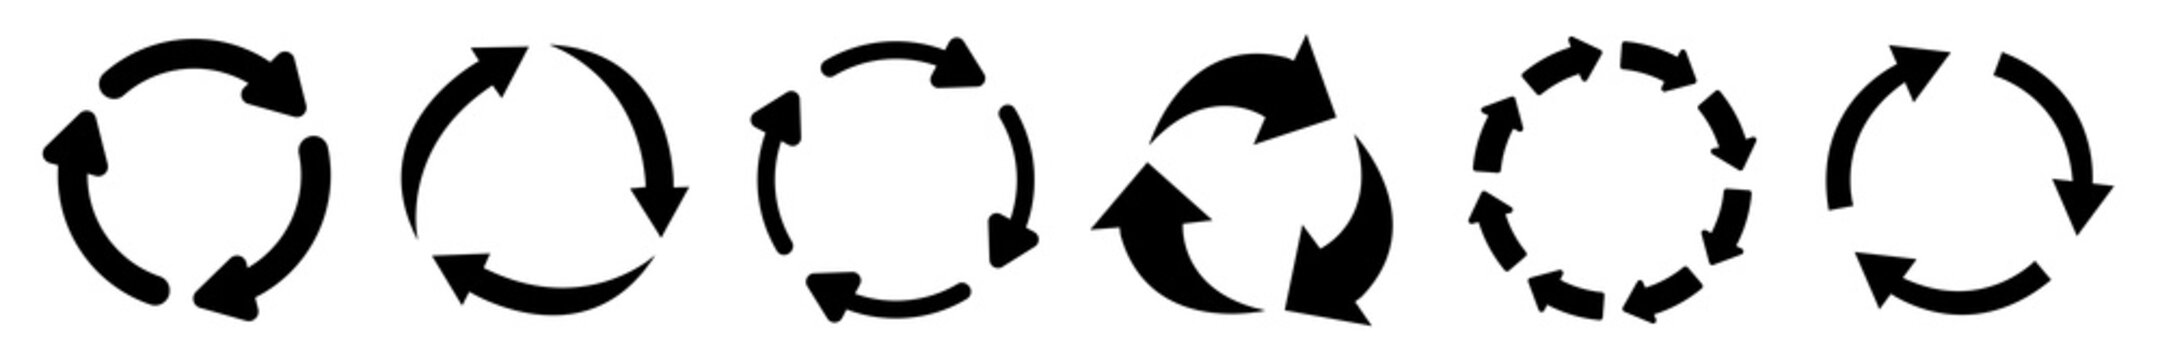 Set of arrow recycle, means using recycled resources, recycling, arrows, recycle icon – vector